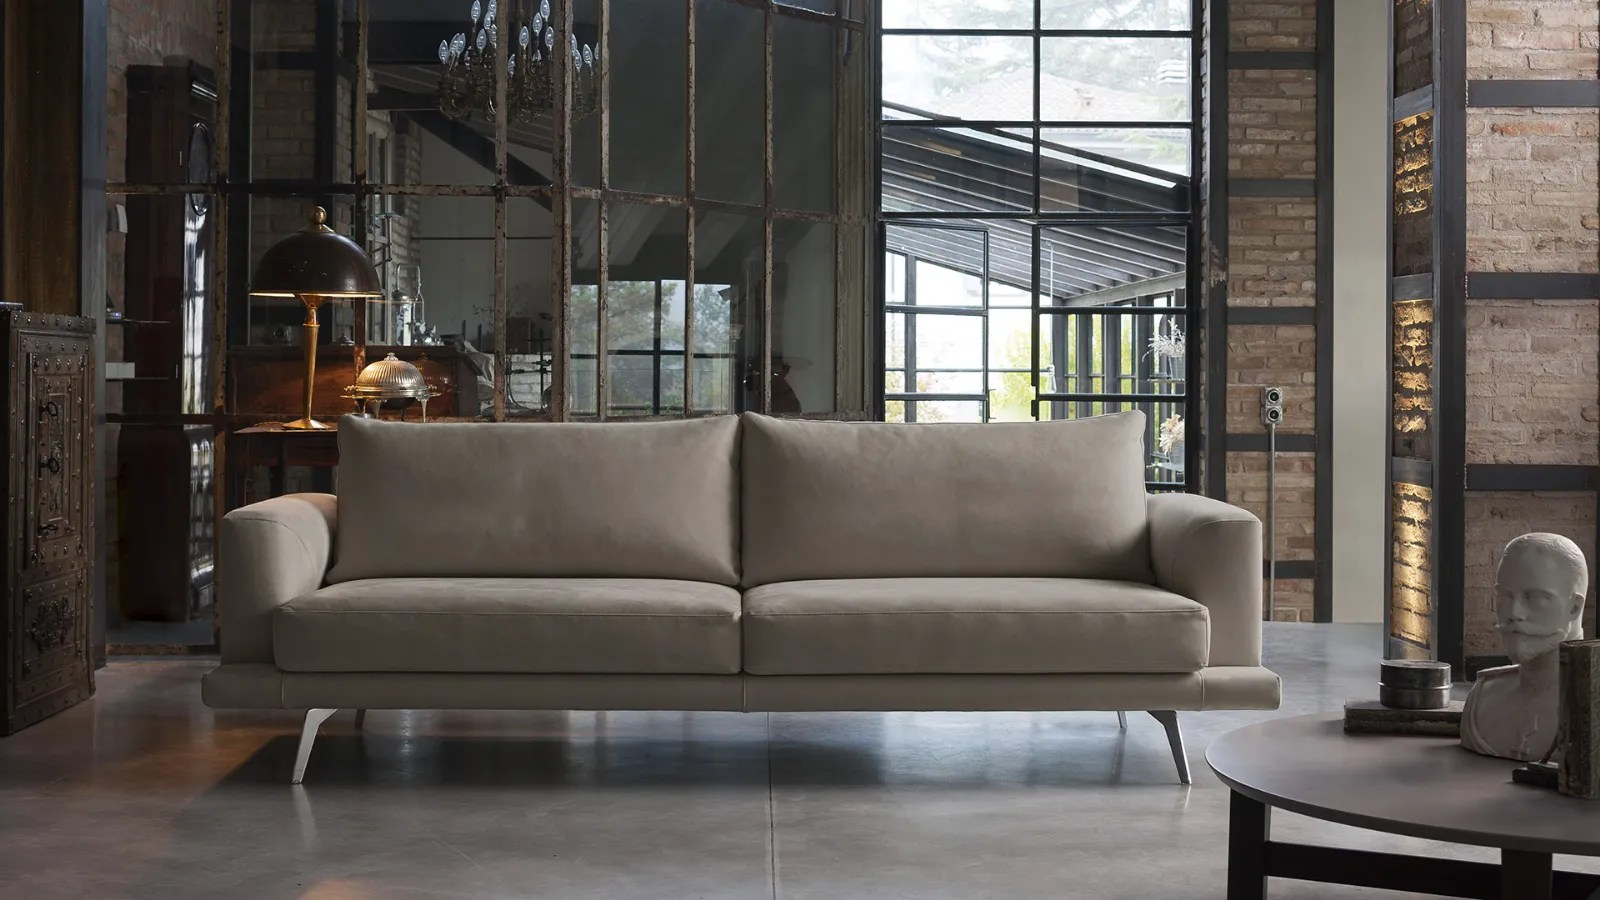 Philip 77 92 A Modern Suspended Sofa